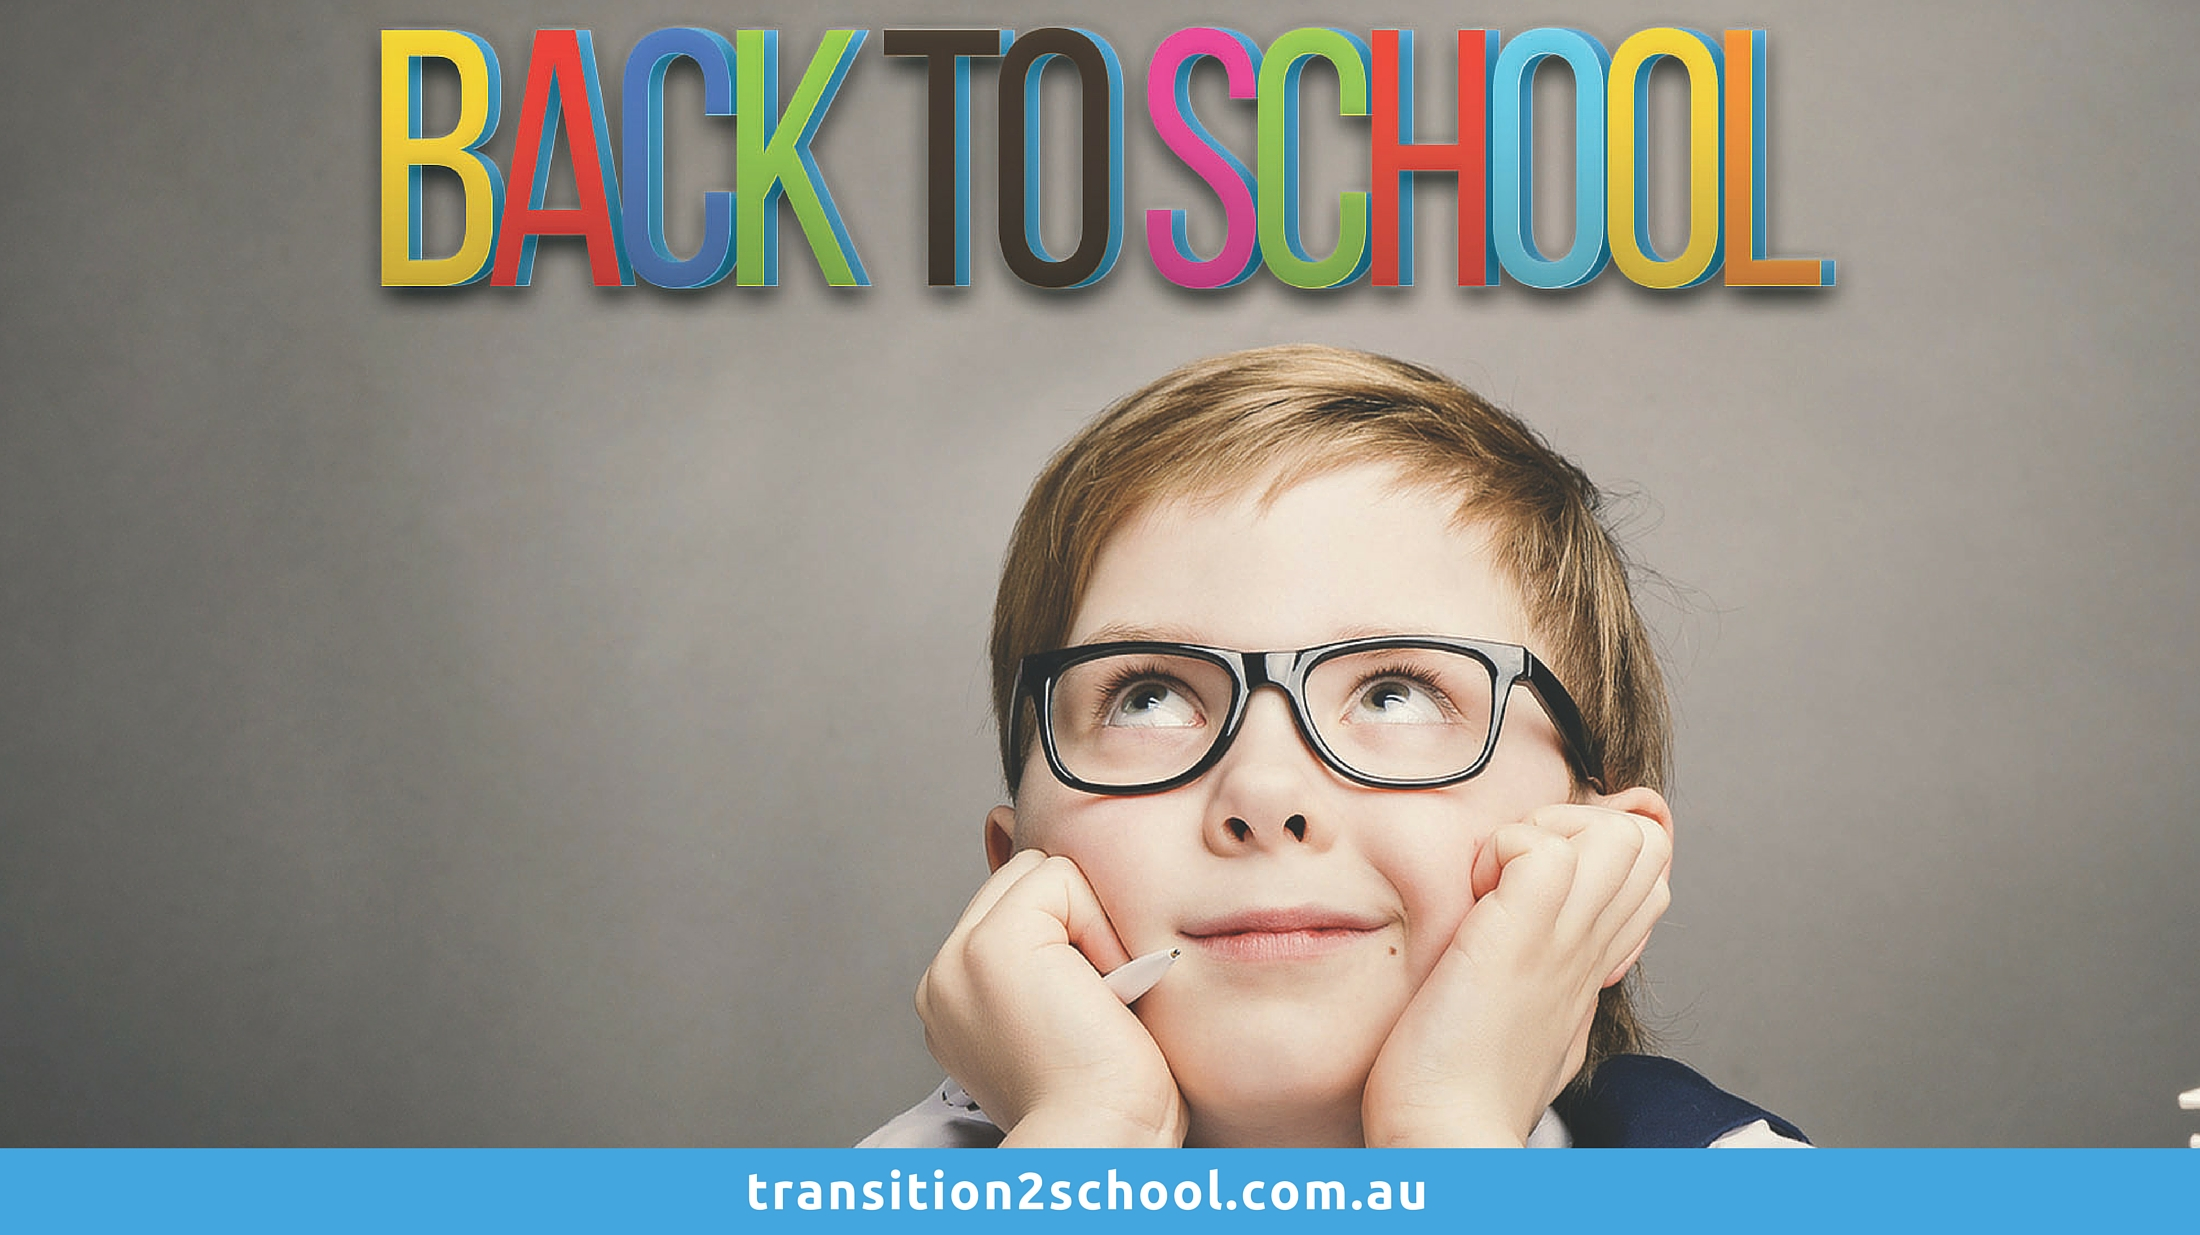 Transition 2 School